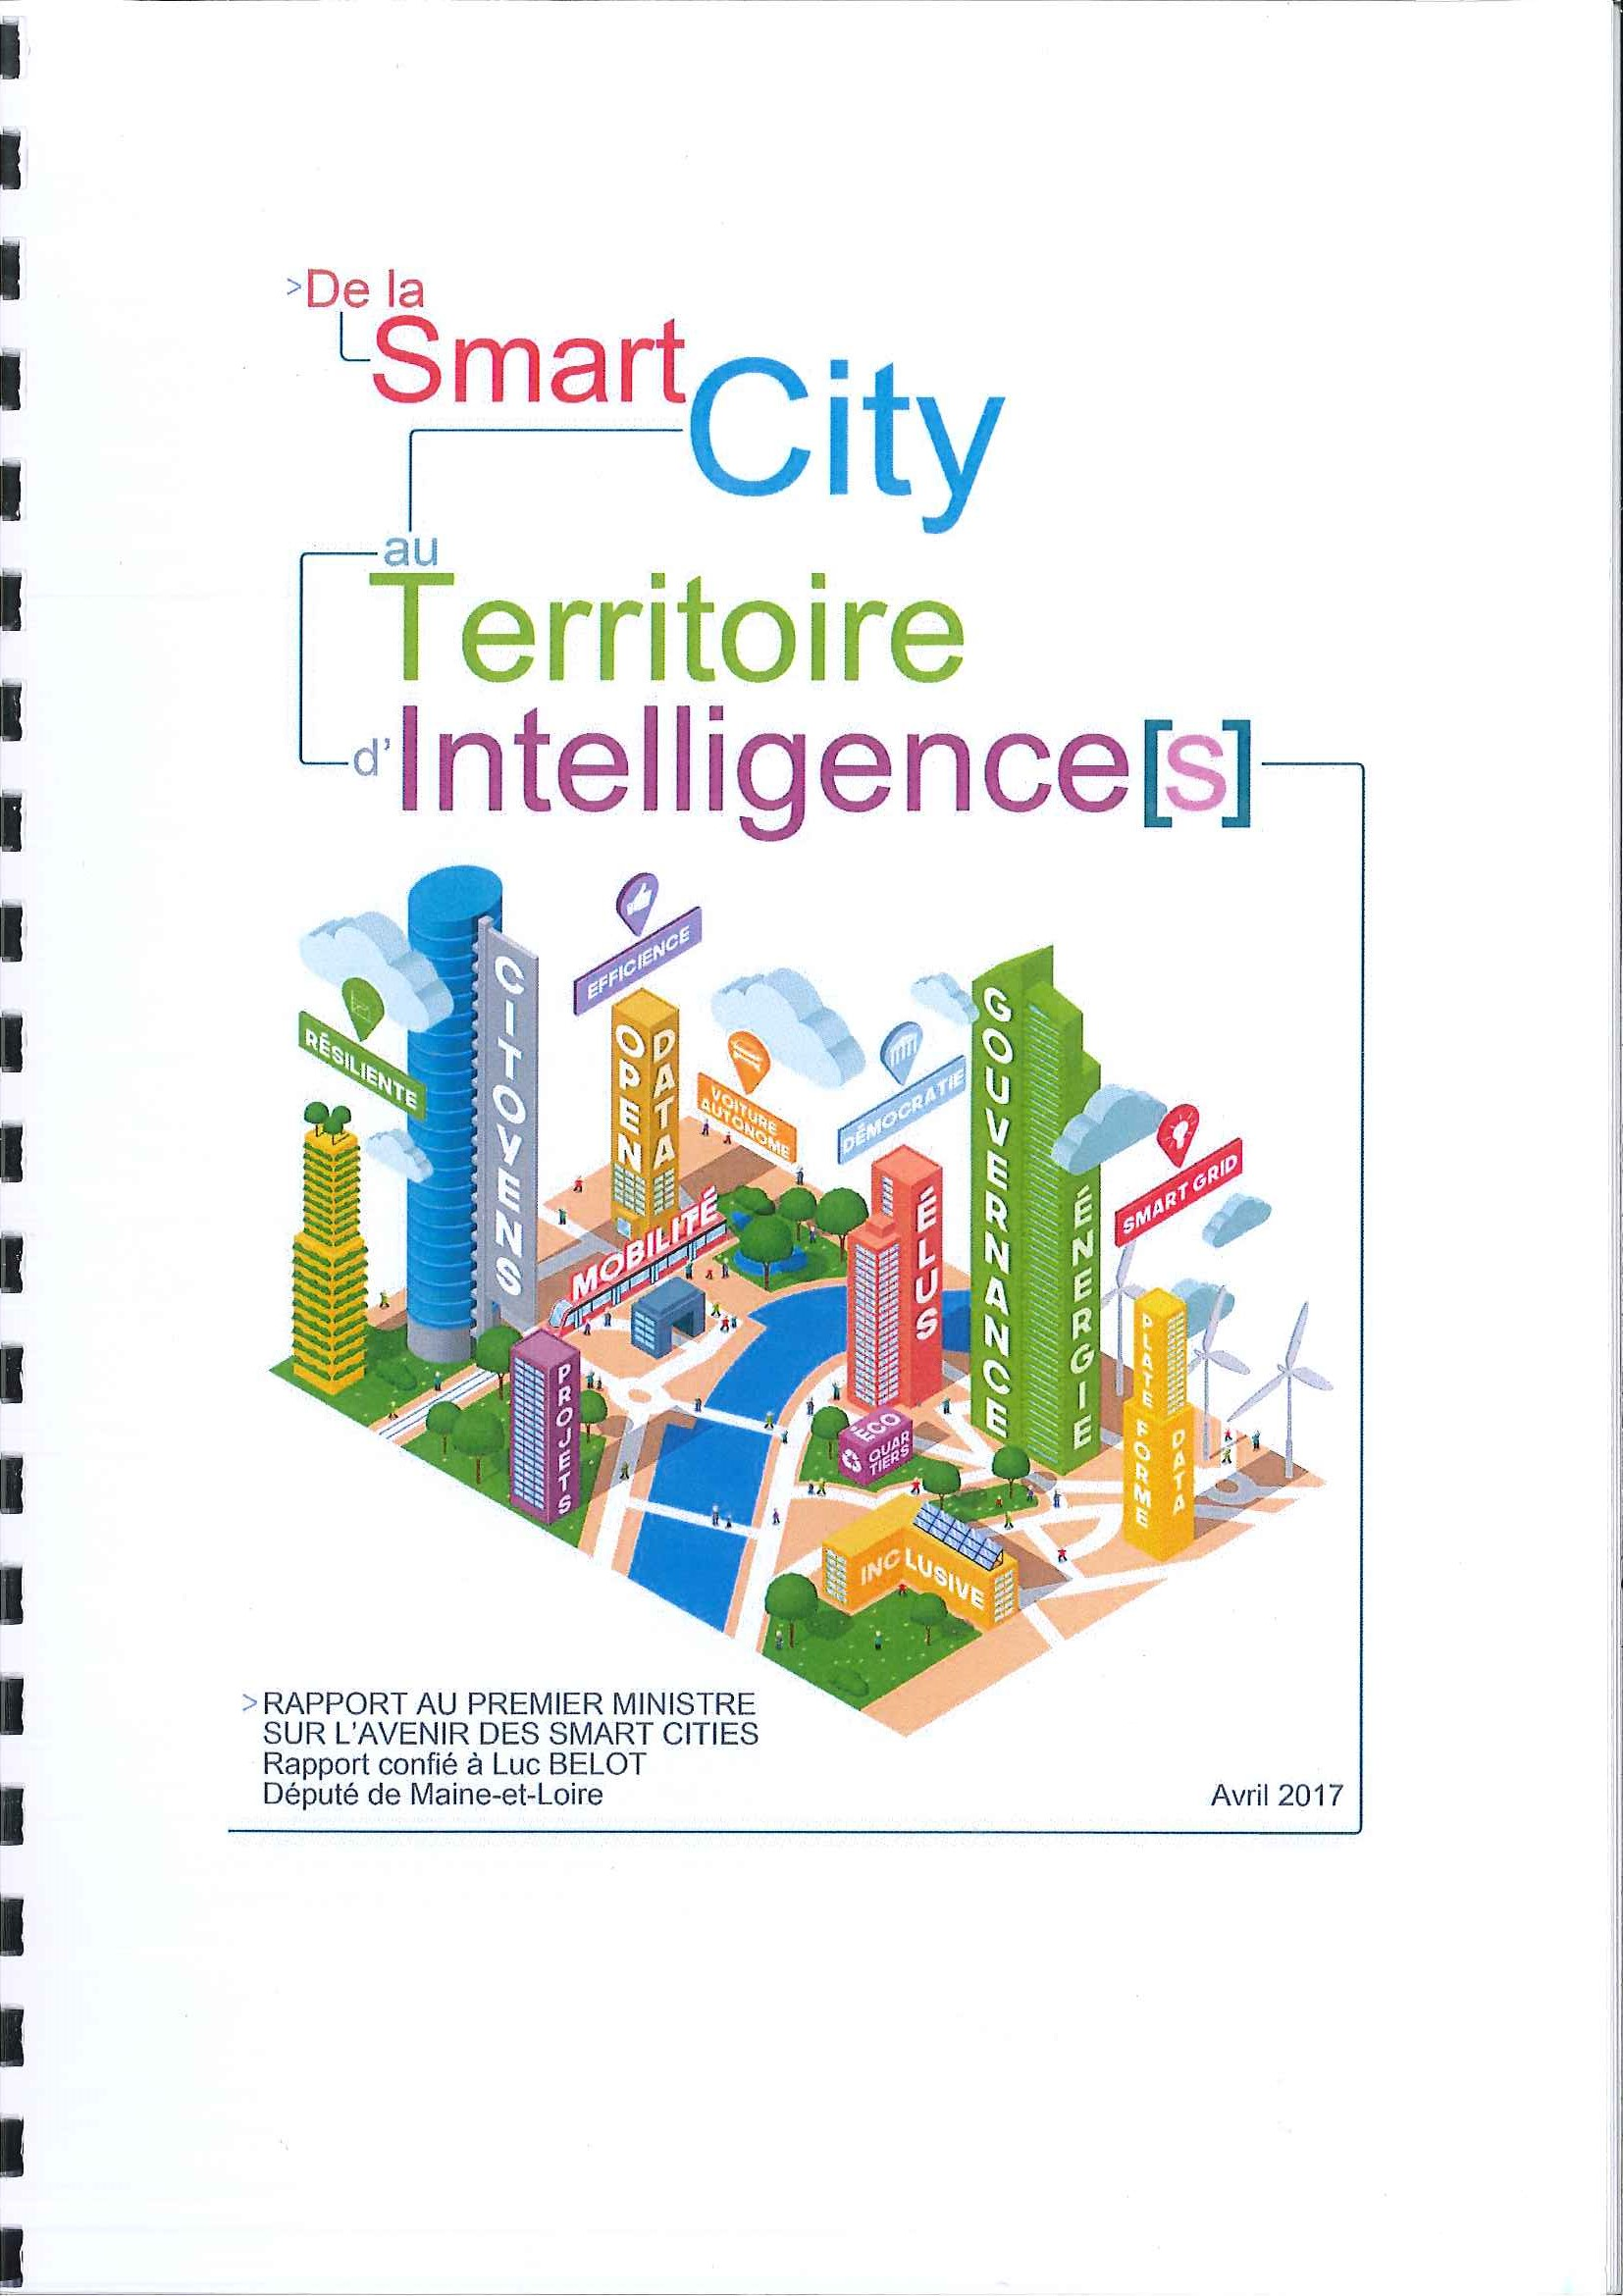 De la Smart City au Territoire d' Intelligence(s)